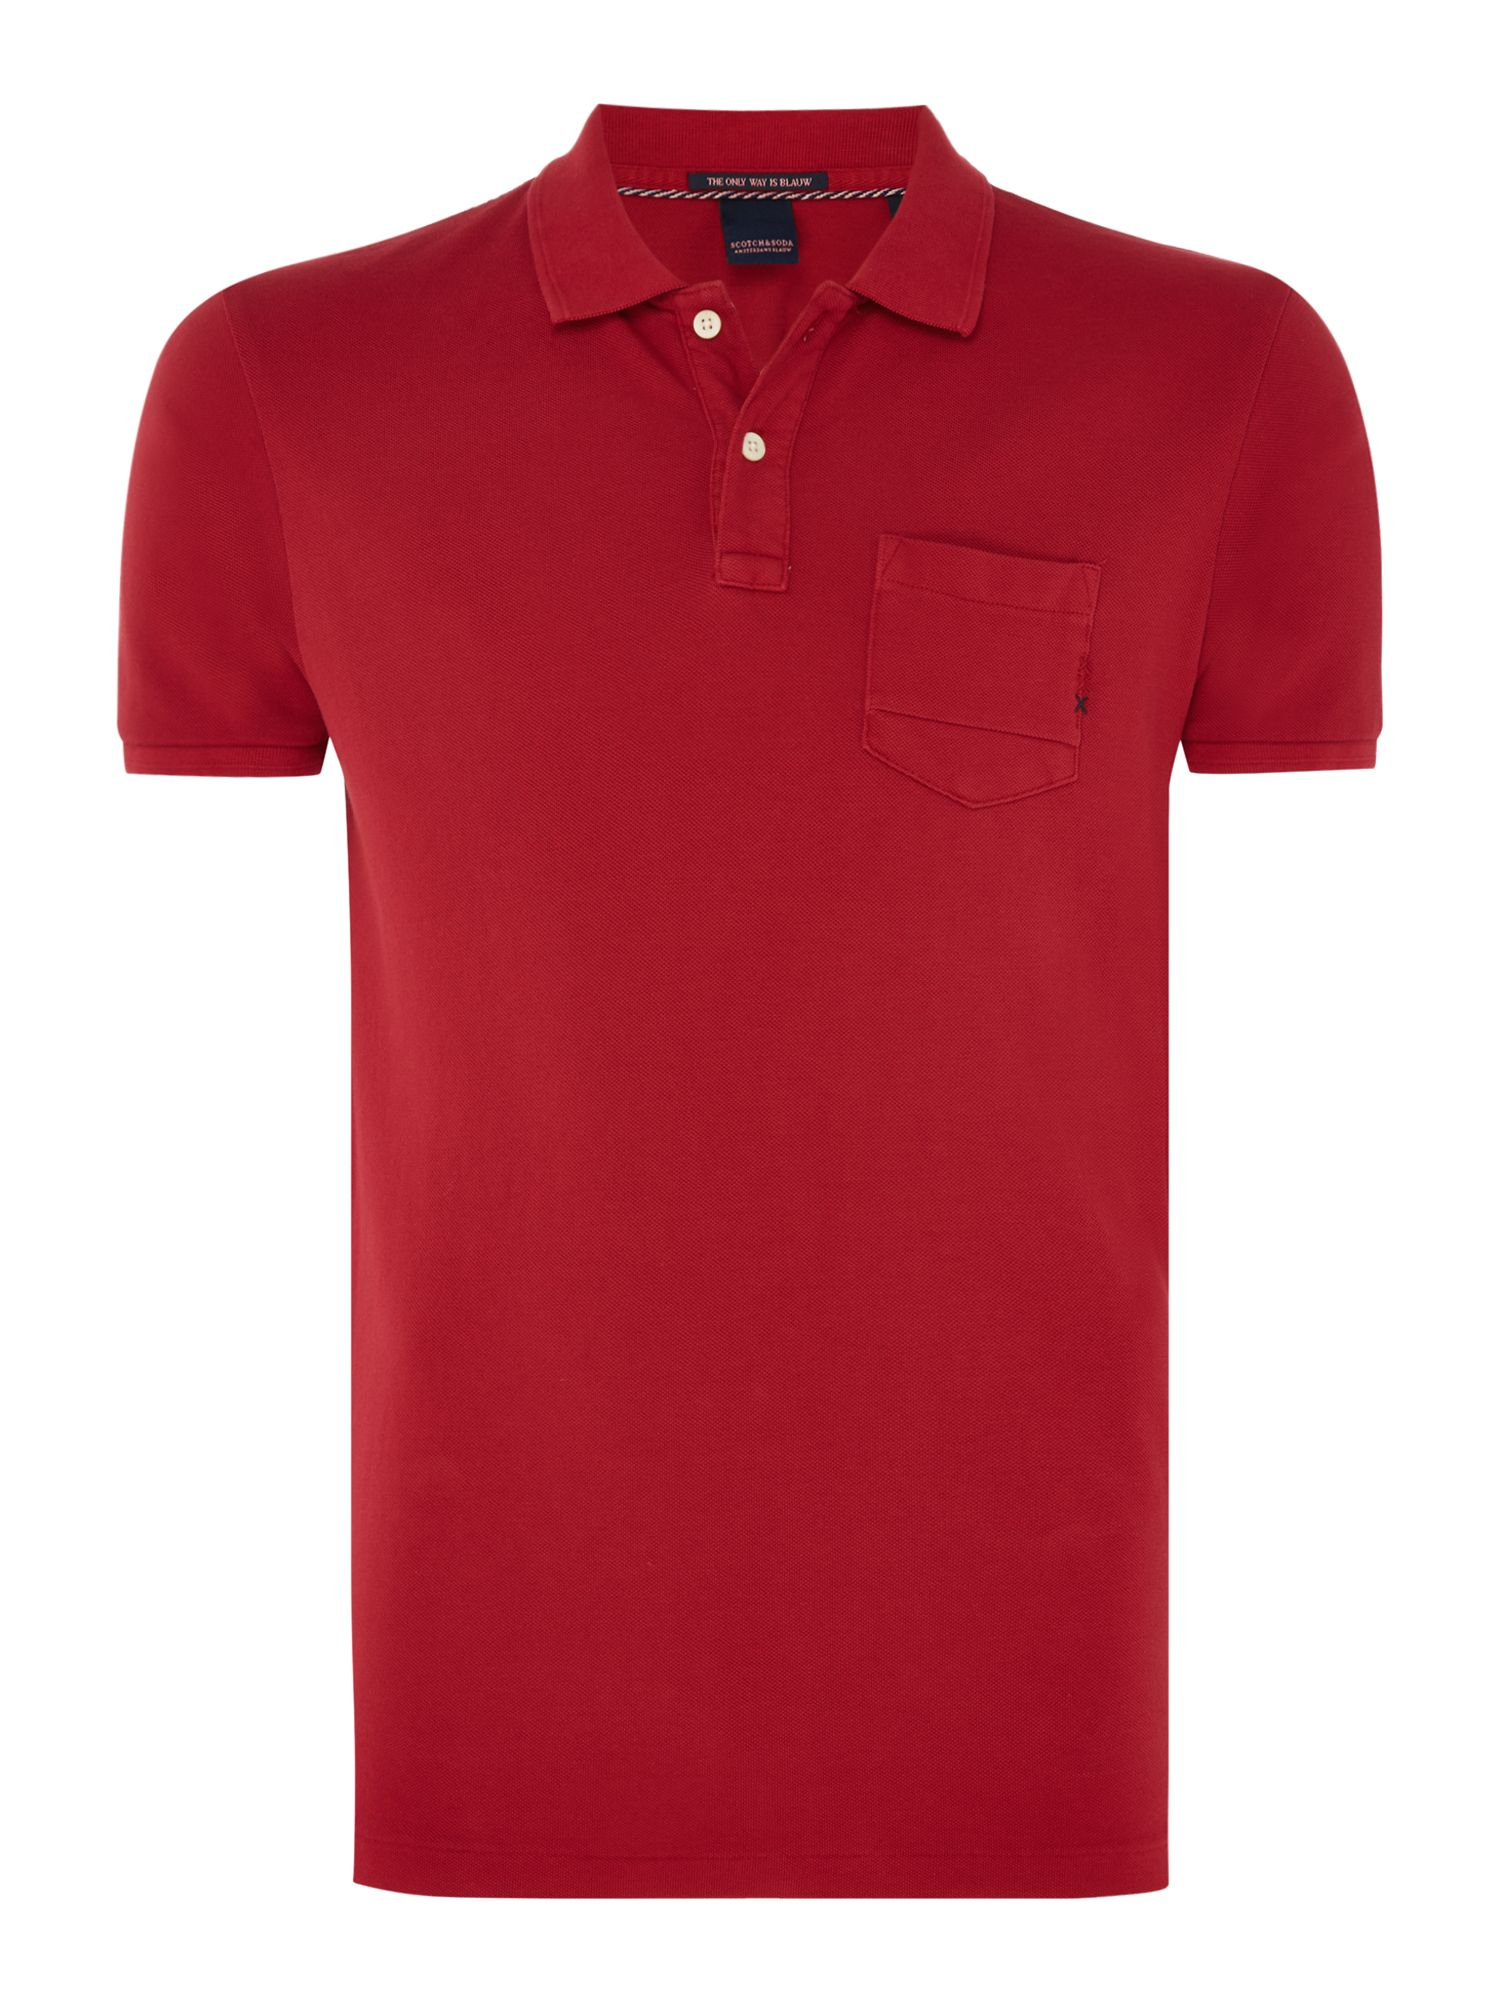 Men's Scotch & Soda Garment Dyed Polo with XXX, Red